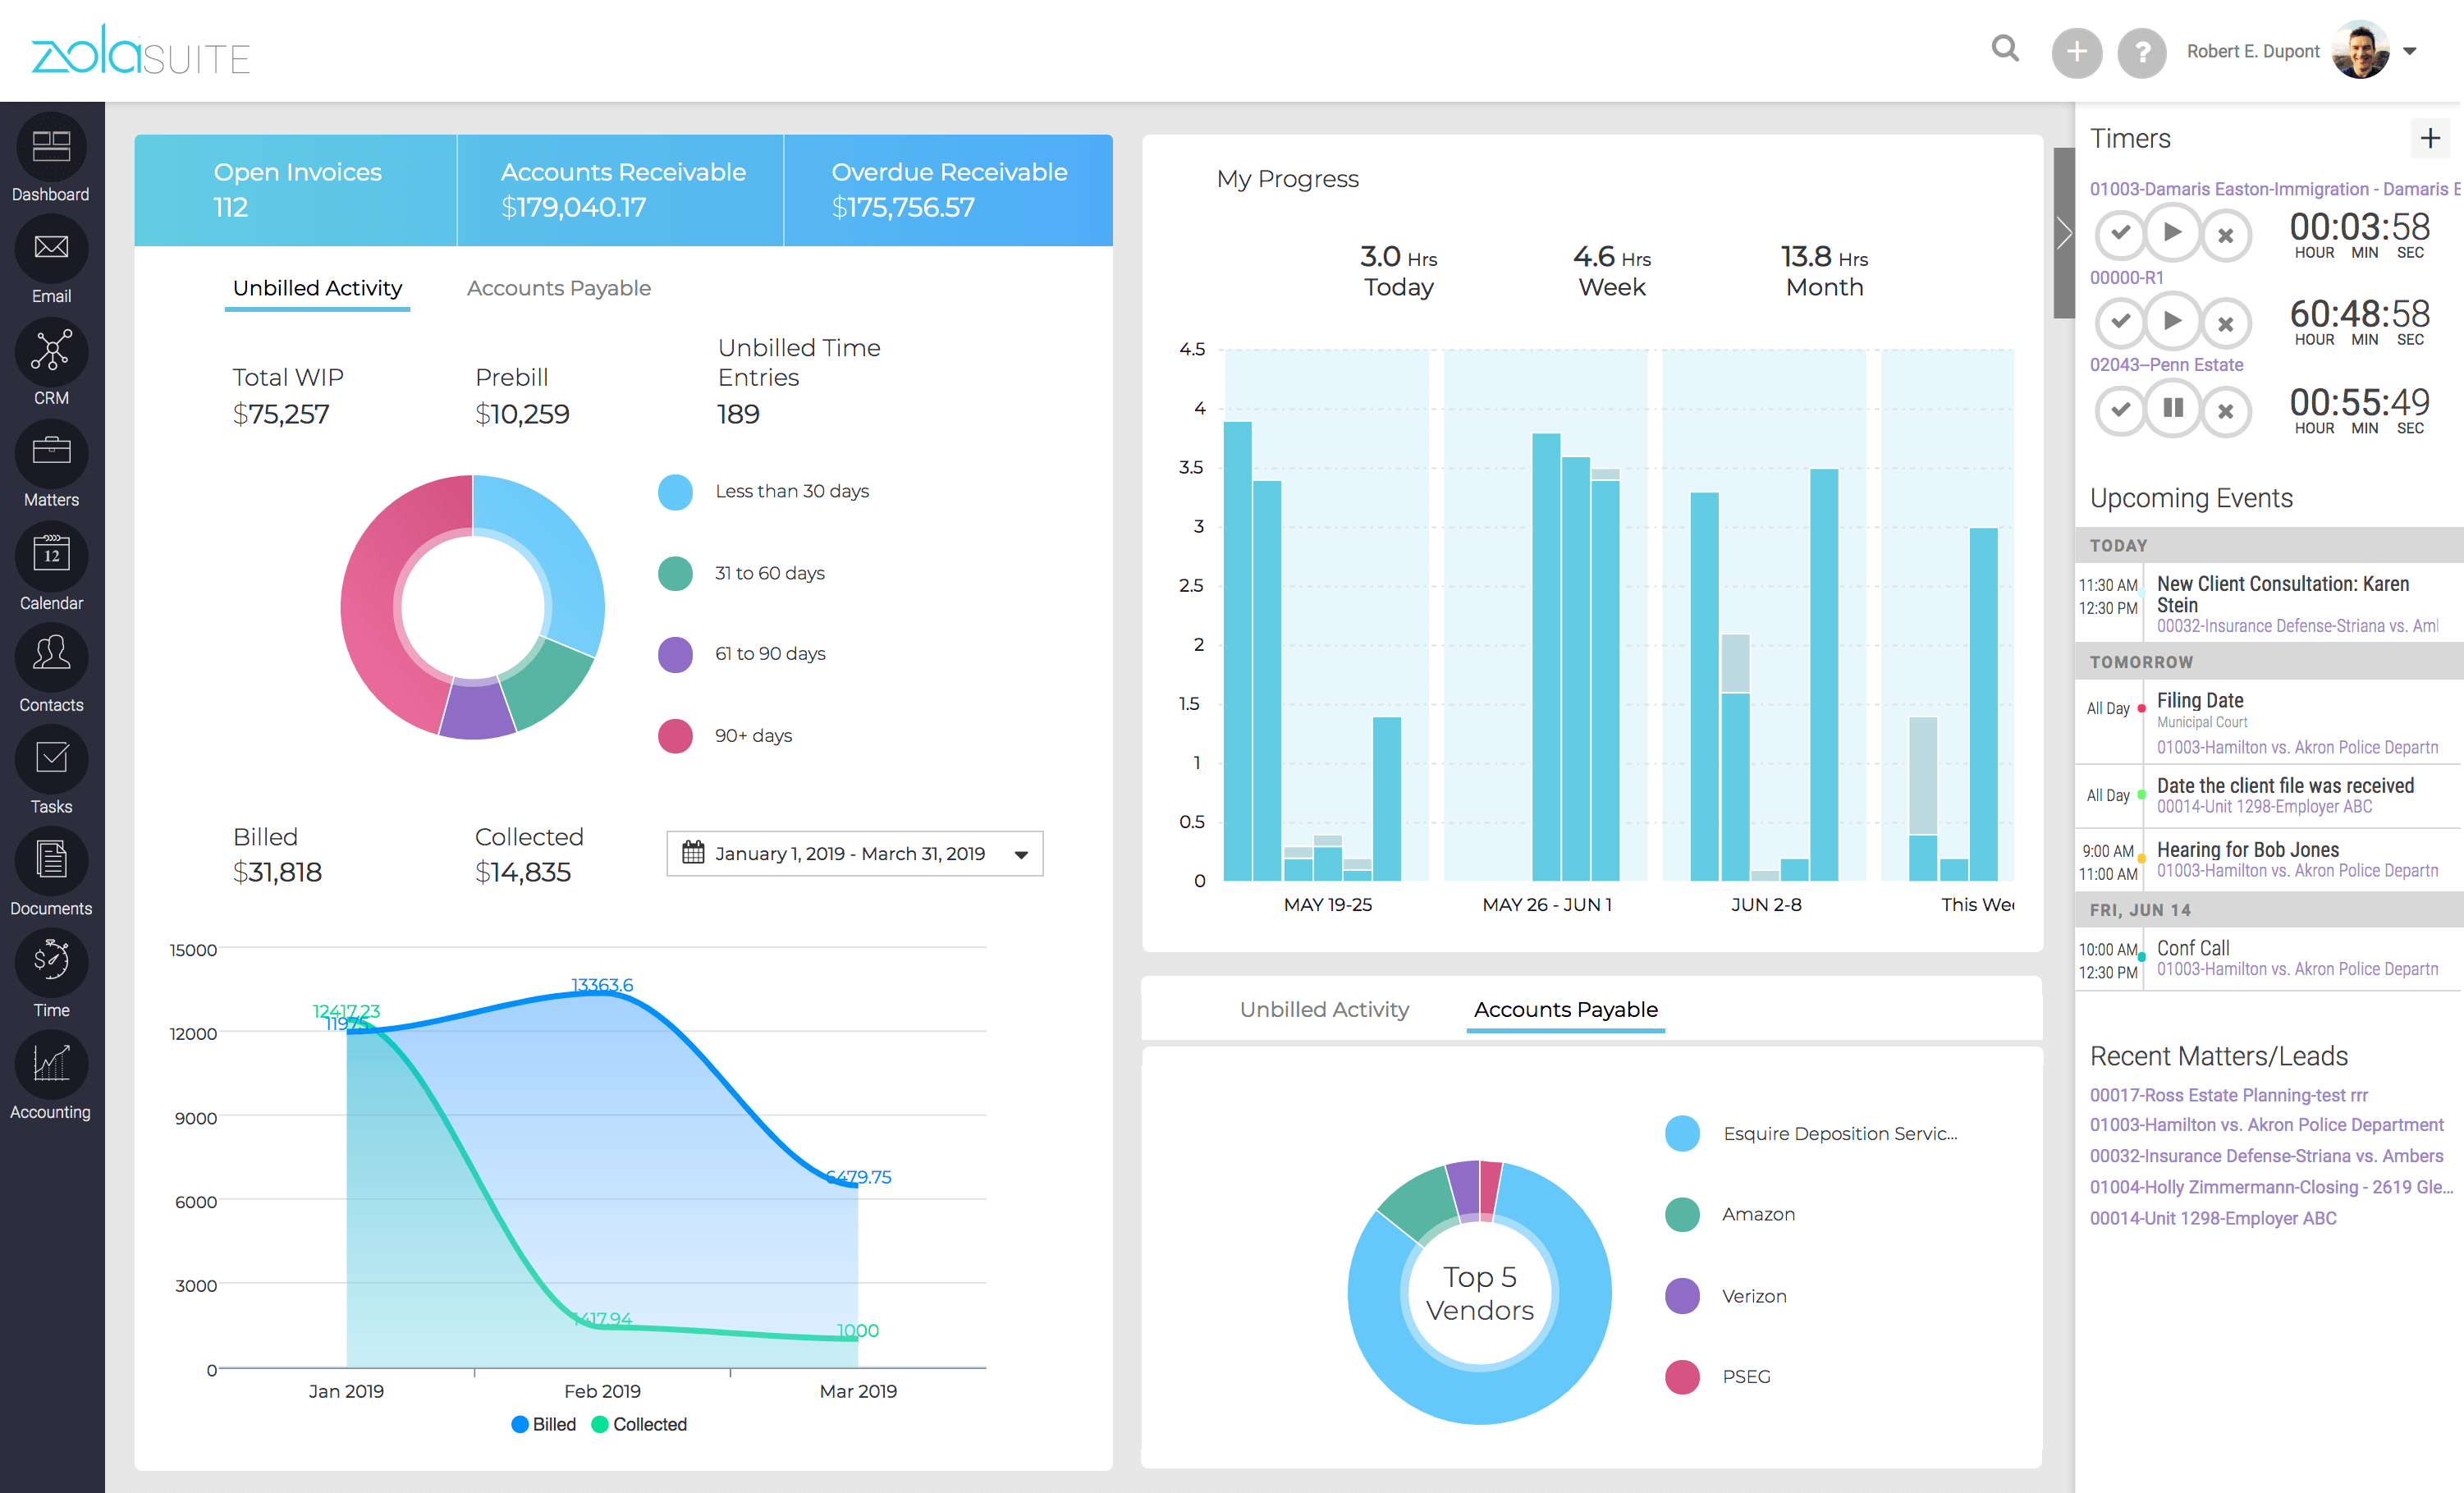 Admin dashboard allows users with administrative permissions to view key business intelligence metrics